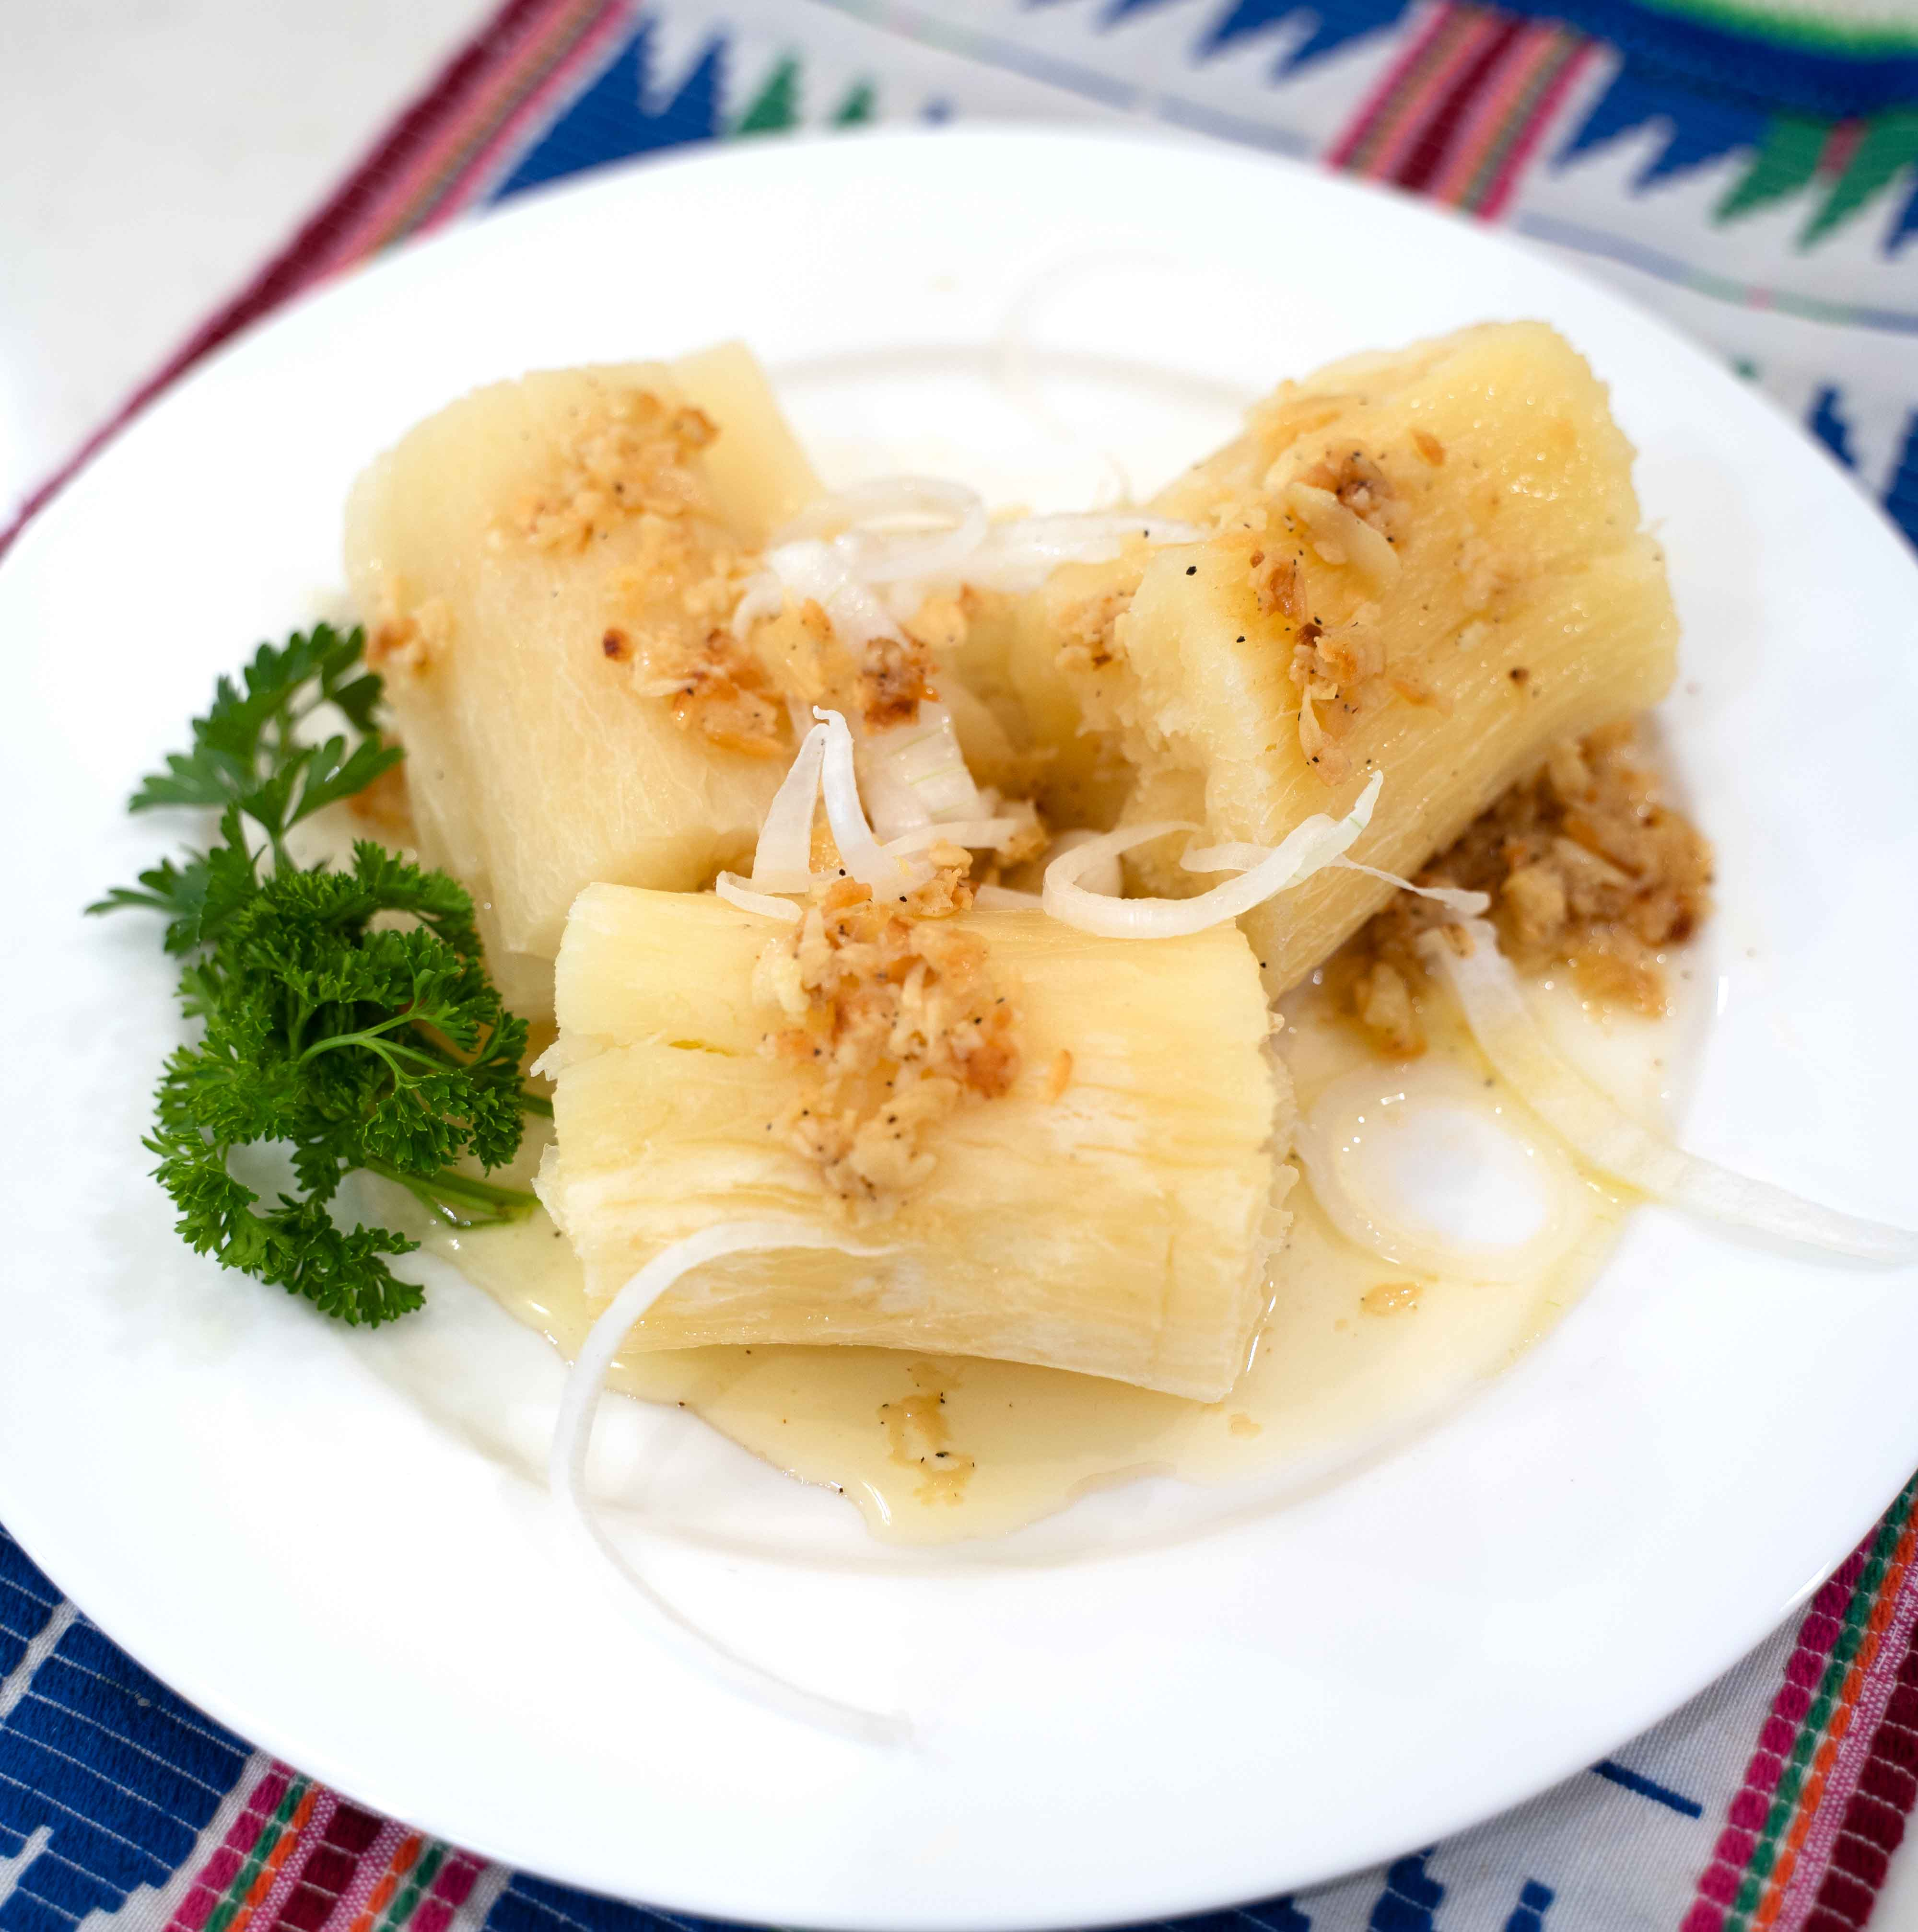 Boiled yuca recipe on a nice plate